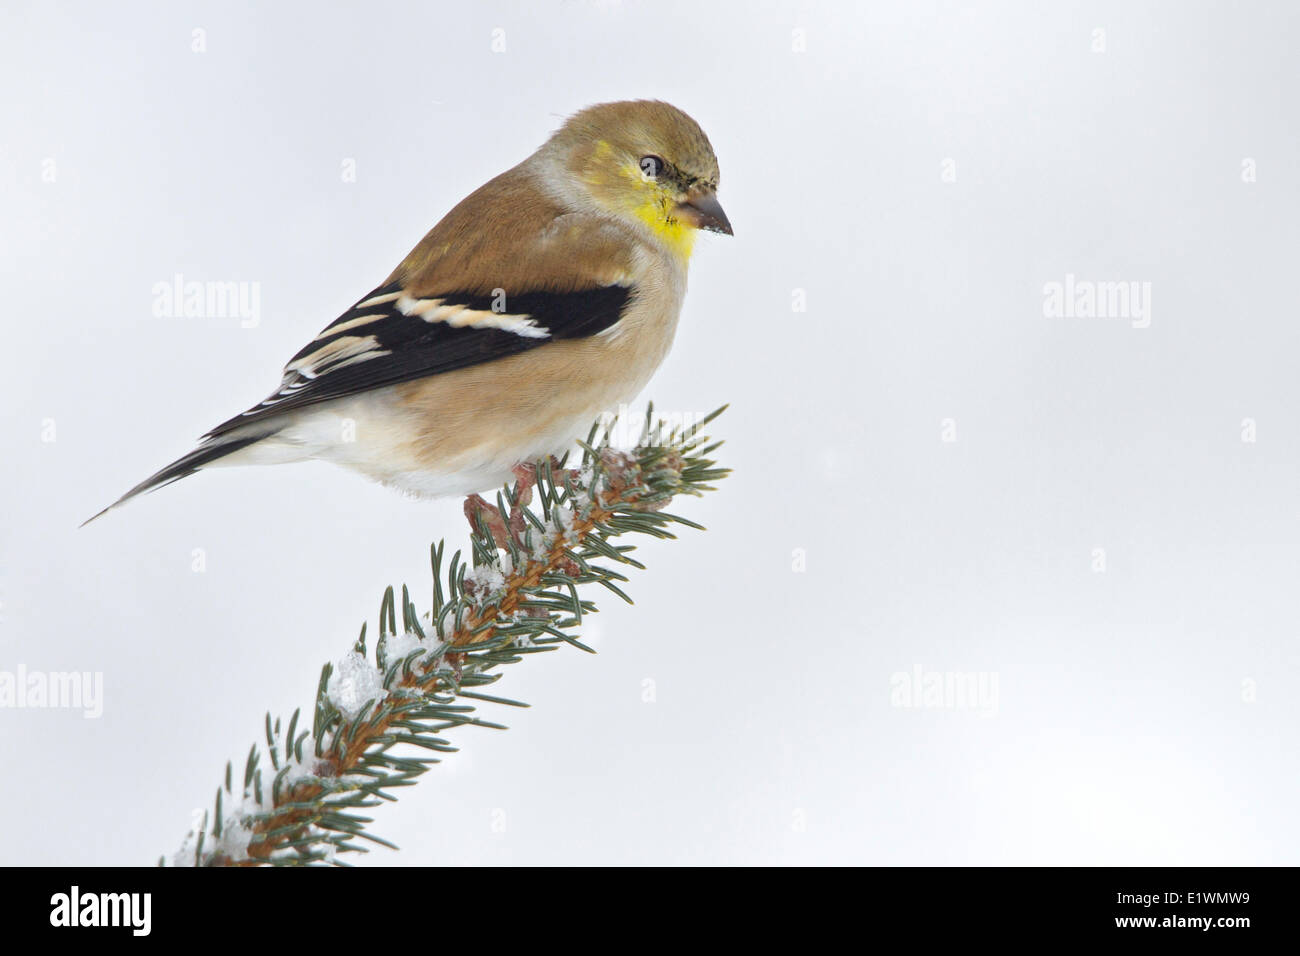 American Goldfinch (Carduelis tristis) perched on a branch in eastern Ontario, Canada. - Stock Image